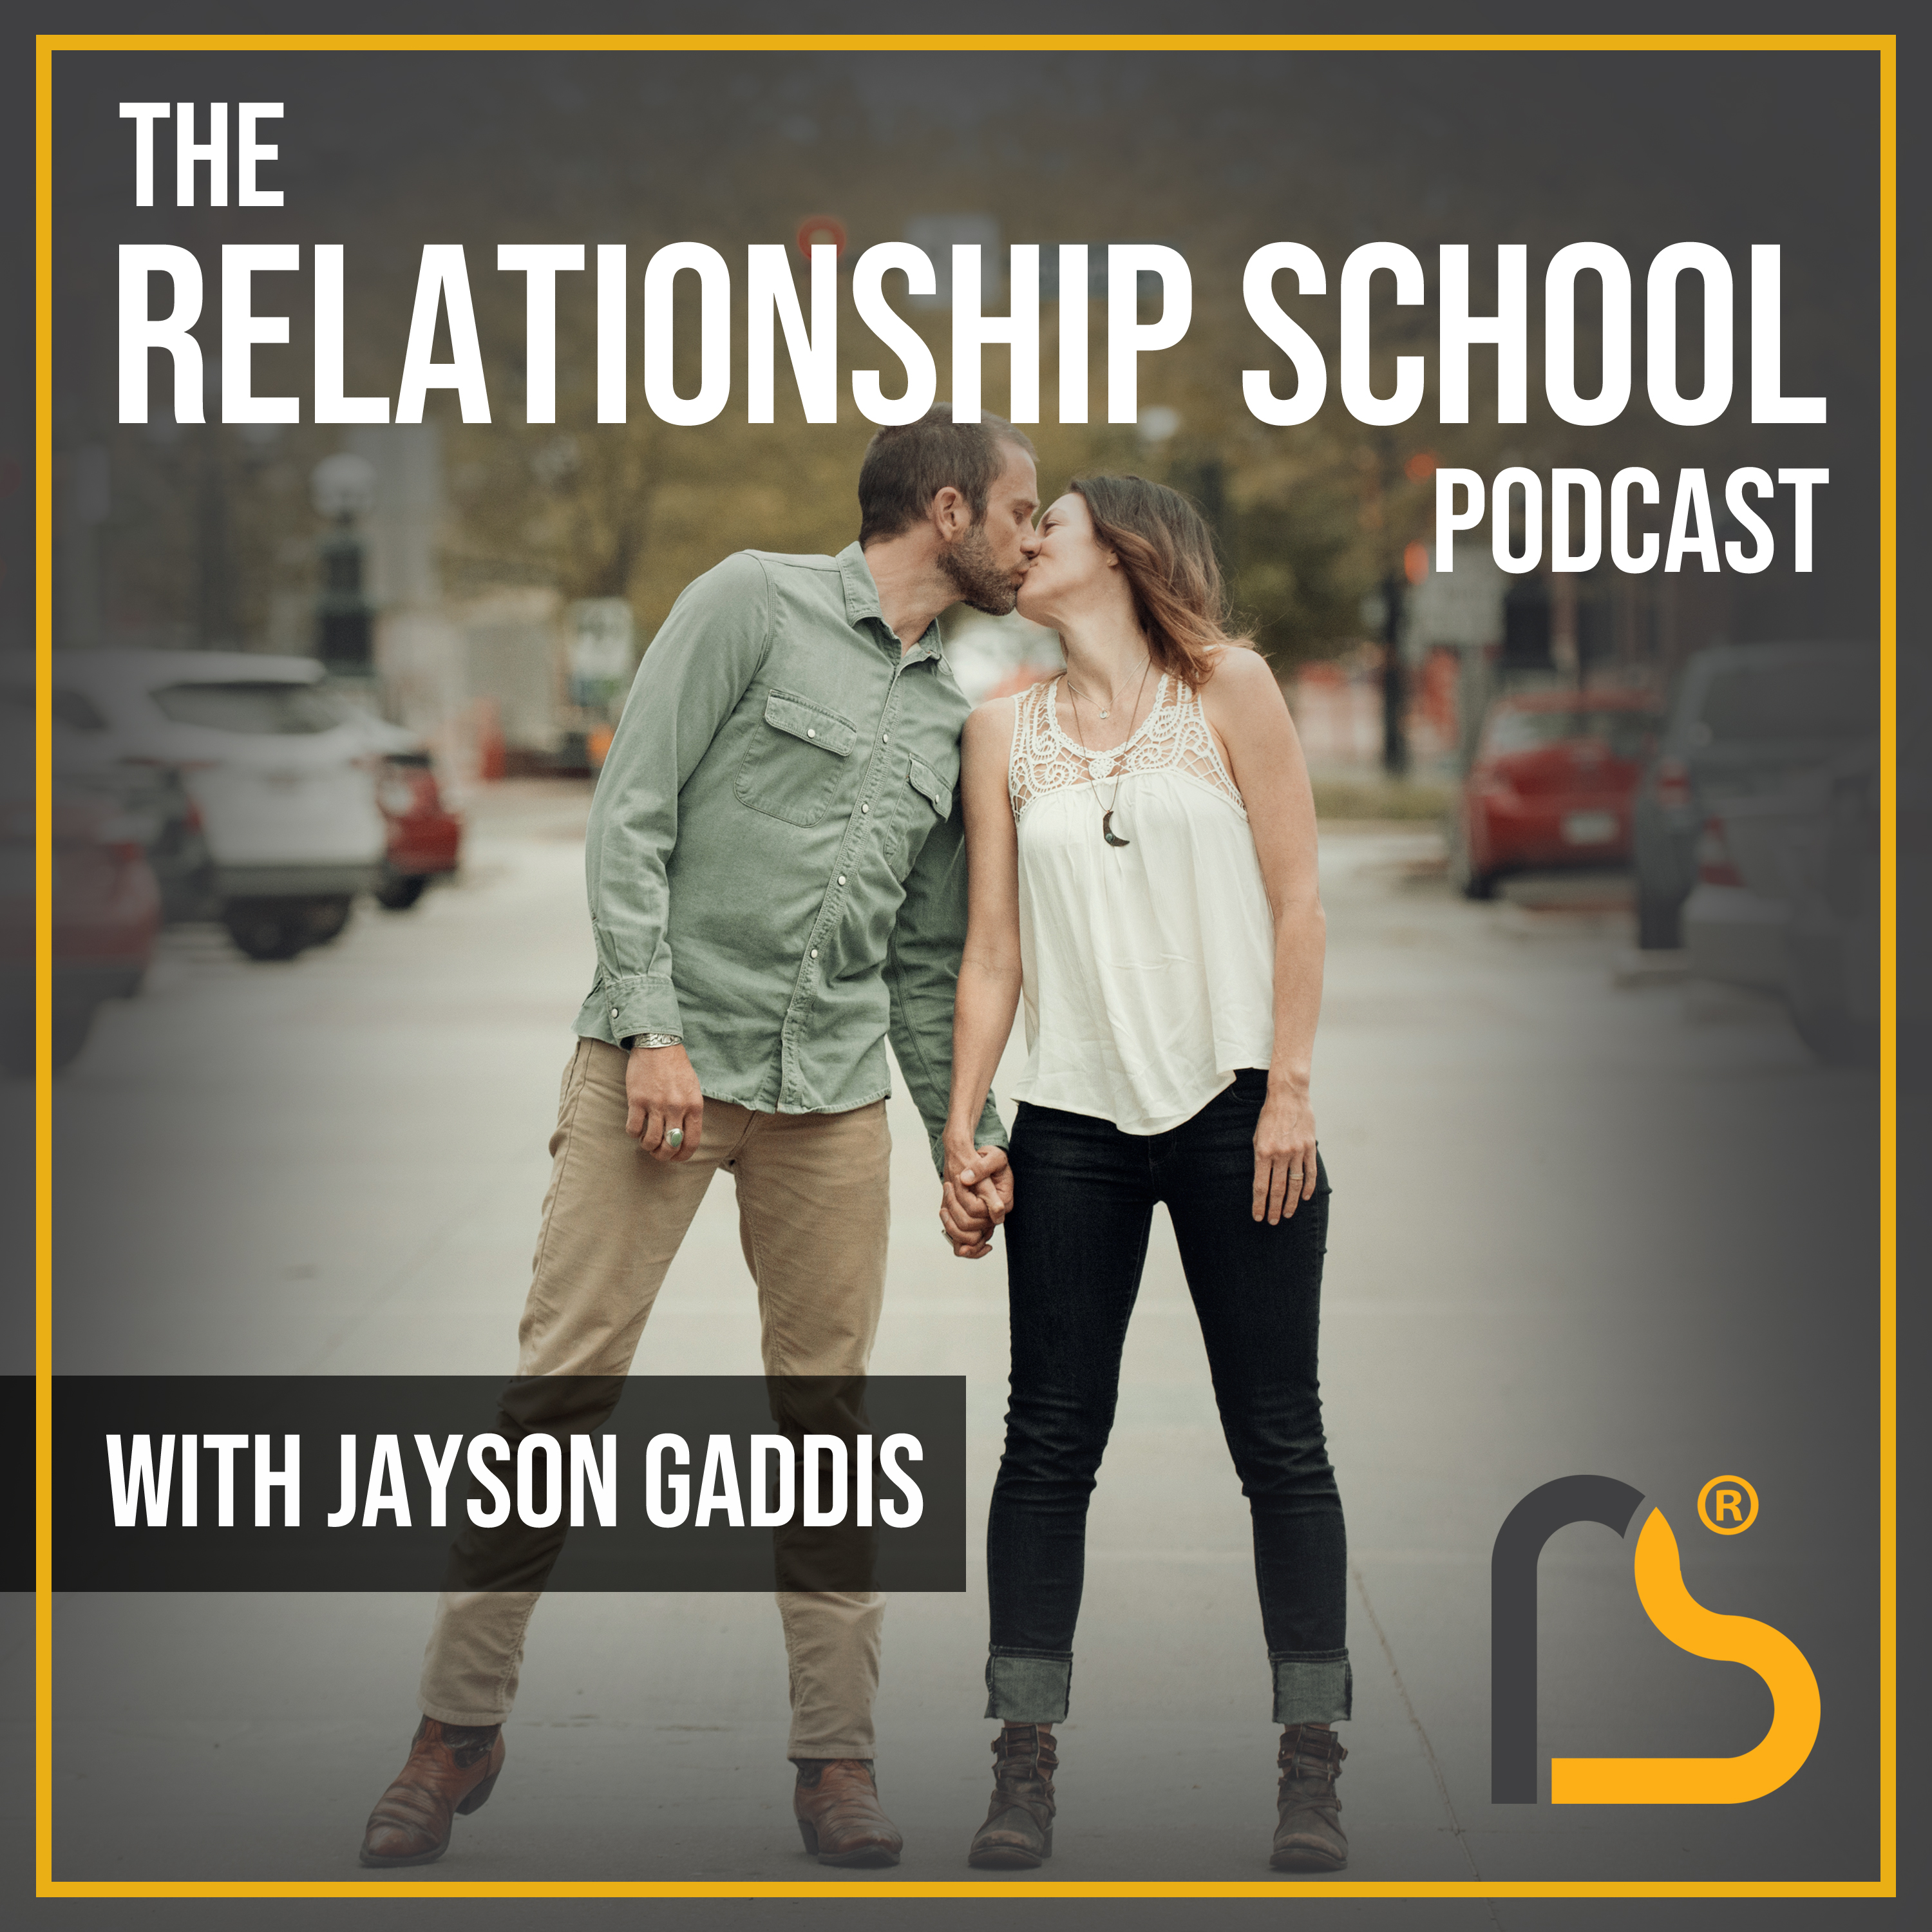 The Relationship School Podcast - Making Meaning & Developing Safety & Resiliency Through Relationships - Joan Borysenko - 269